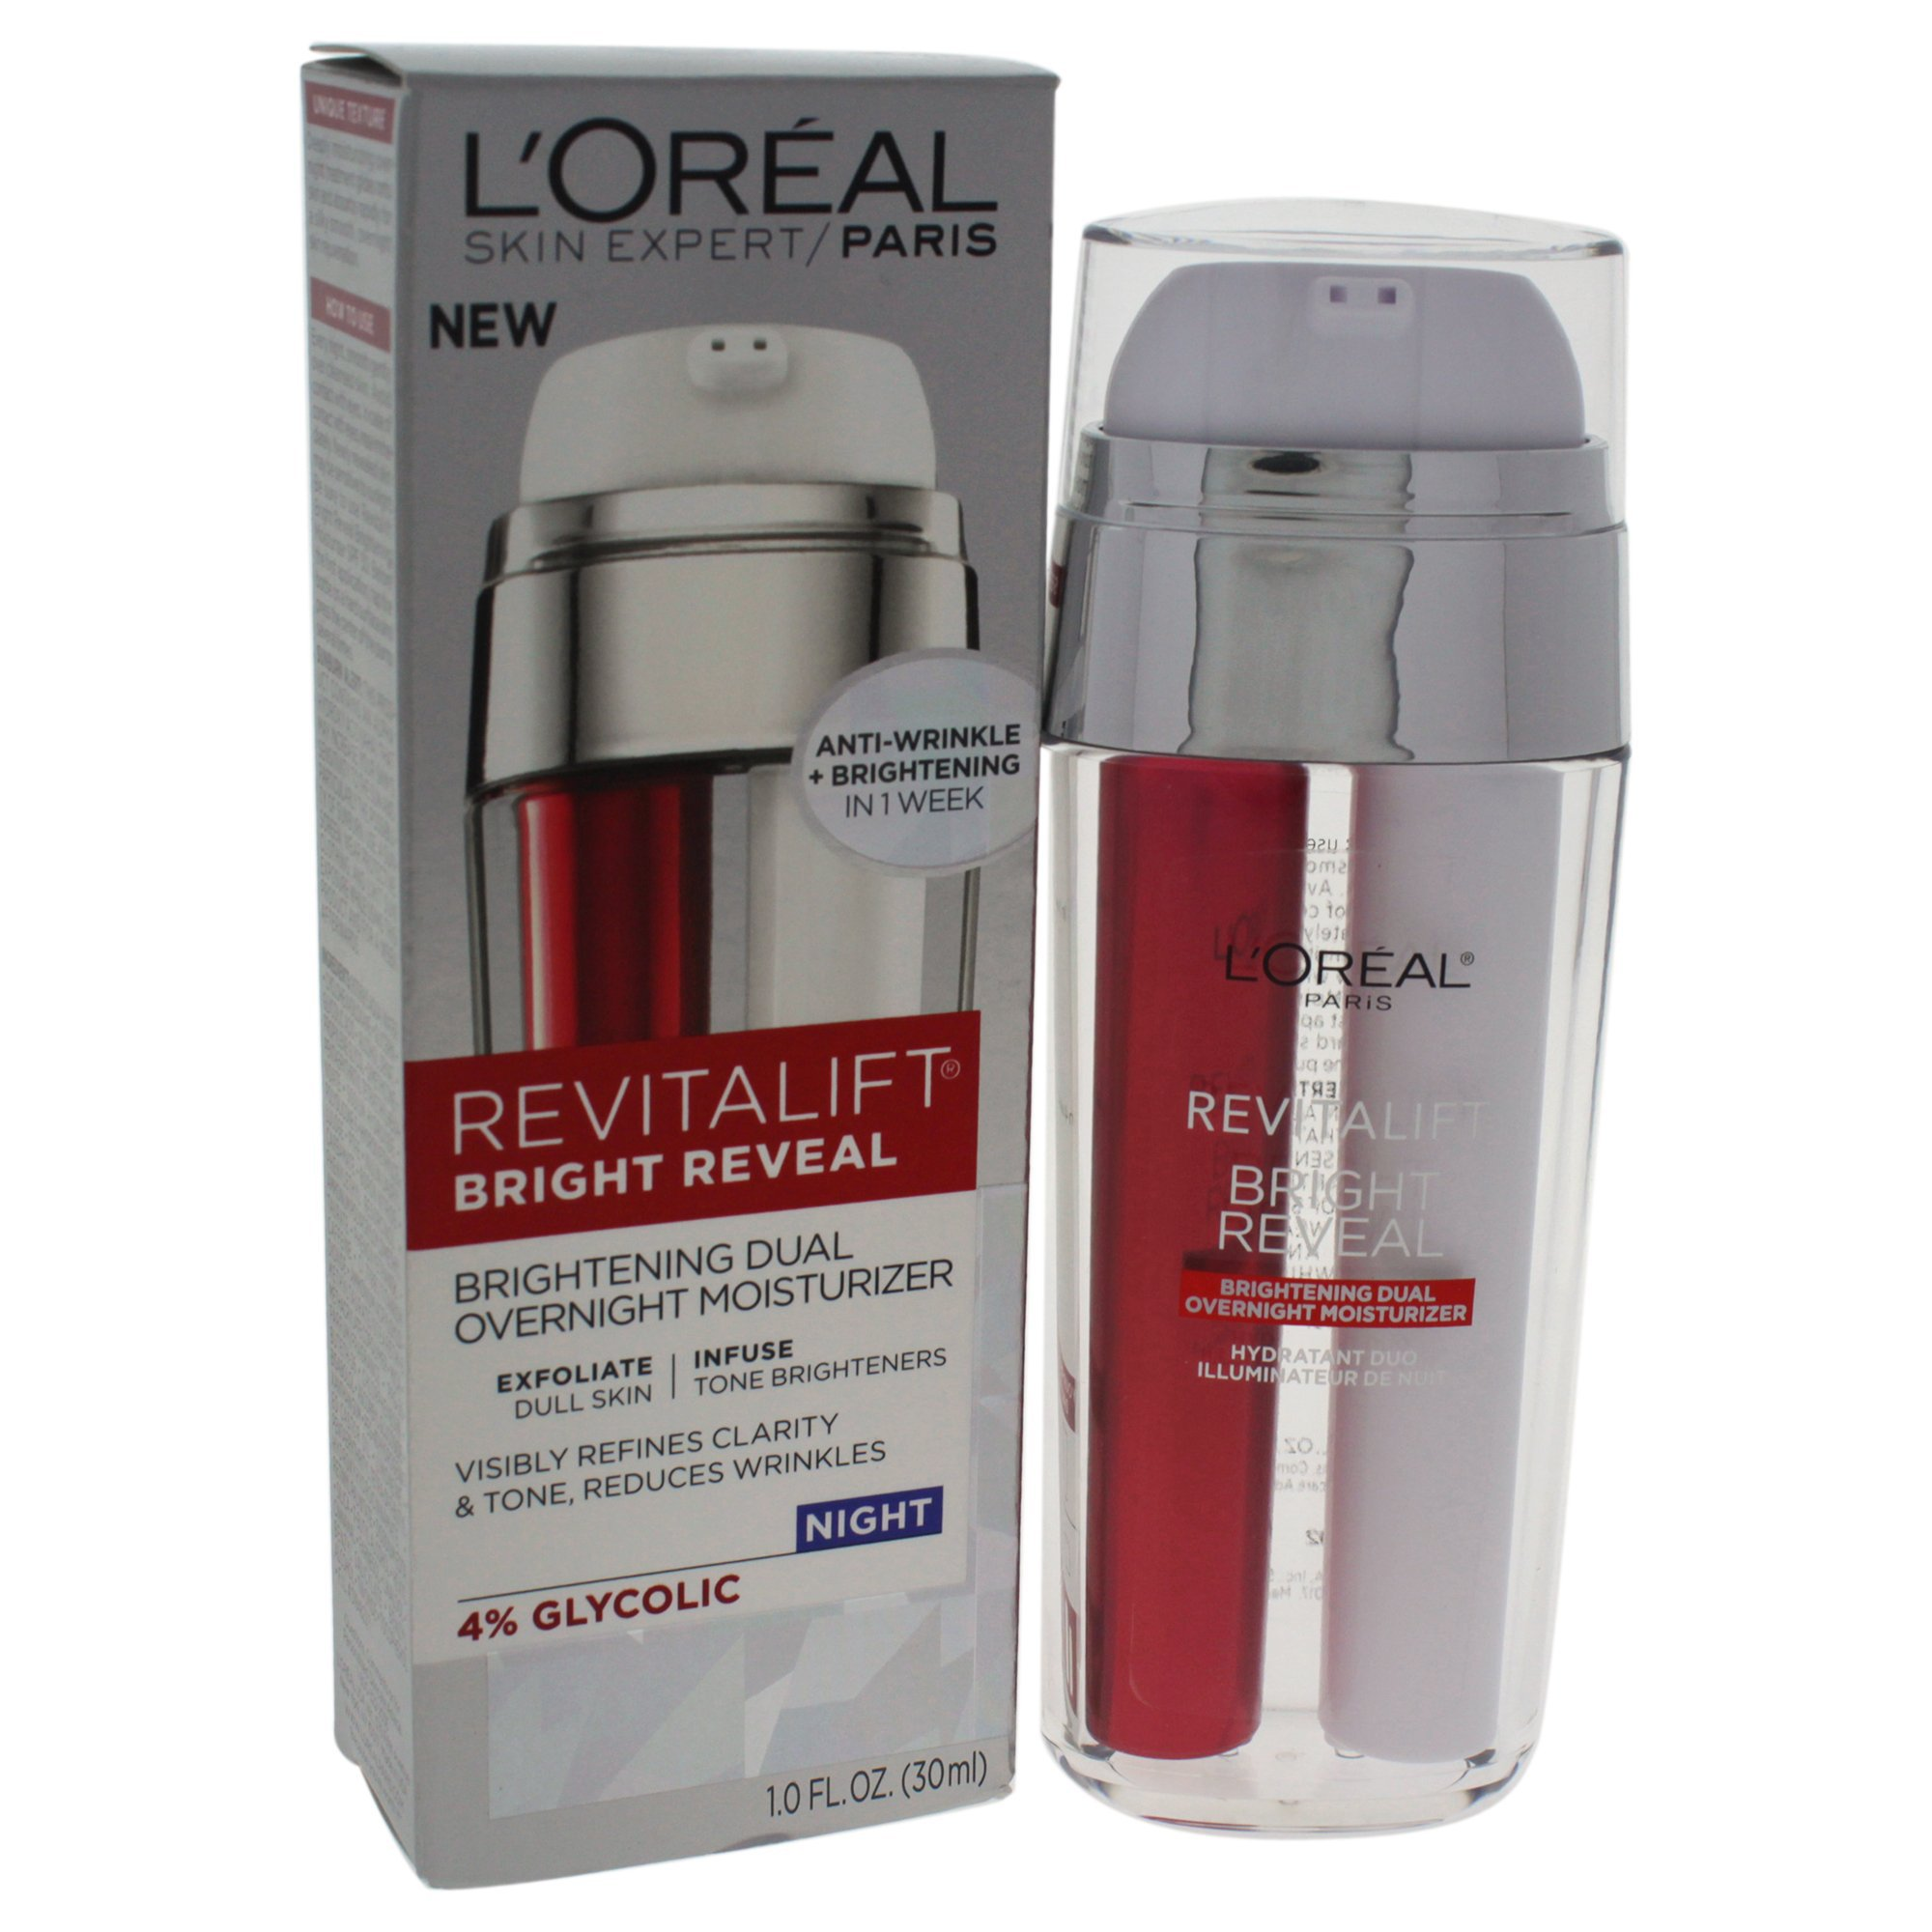 Loreal facial peel for